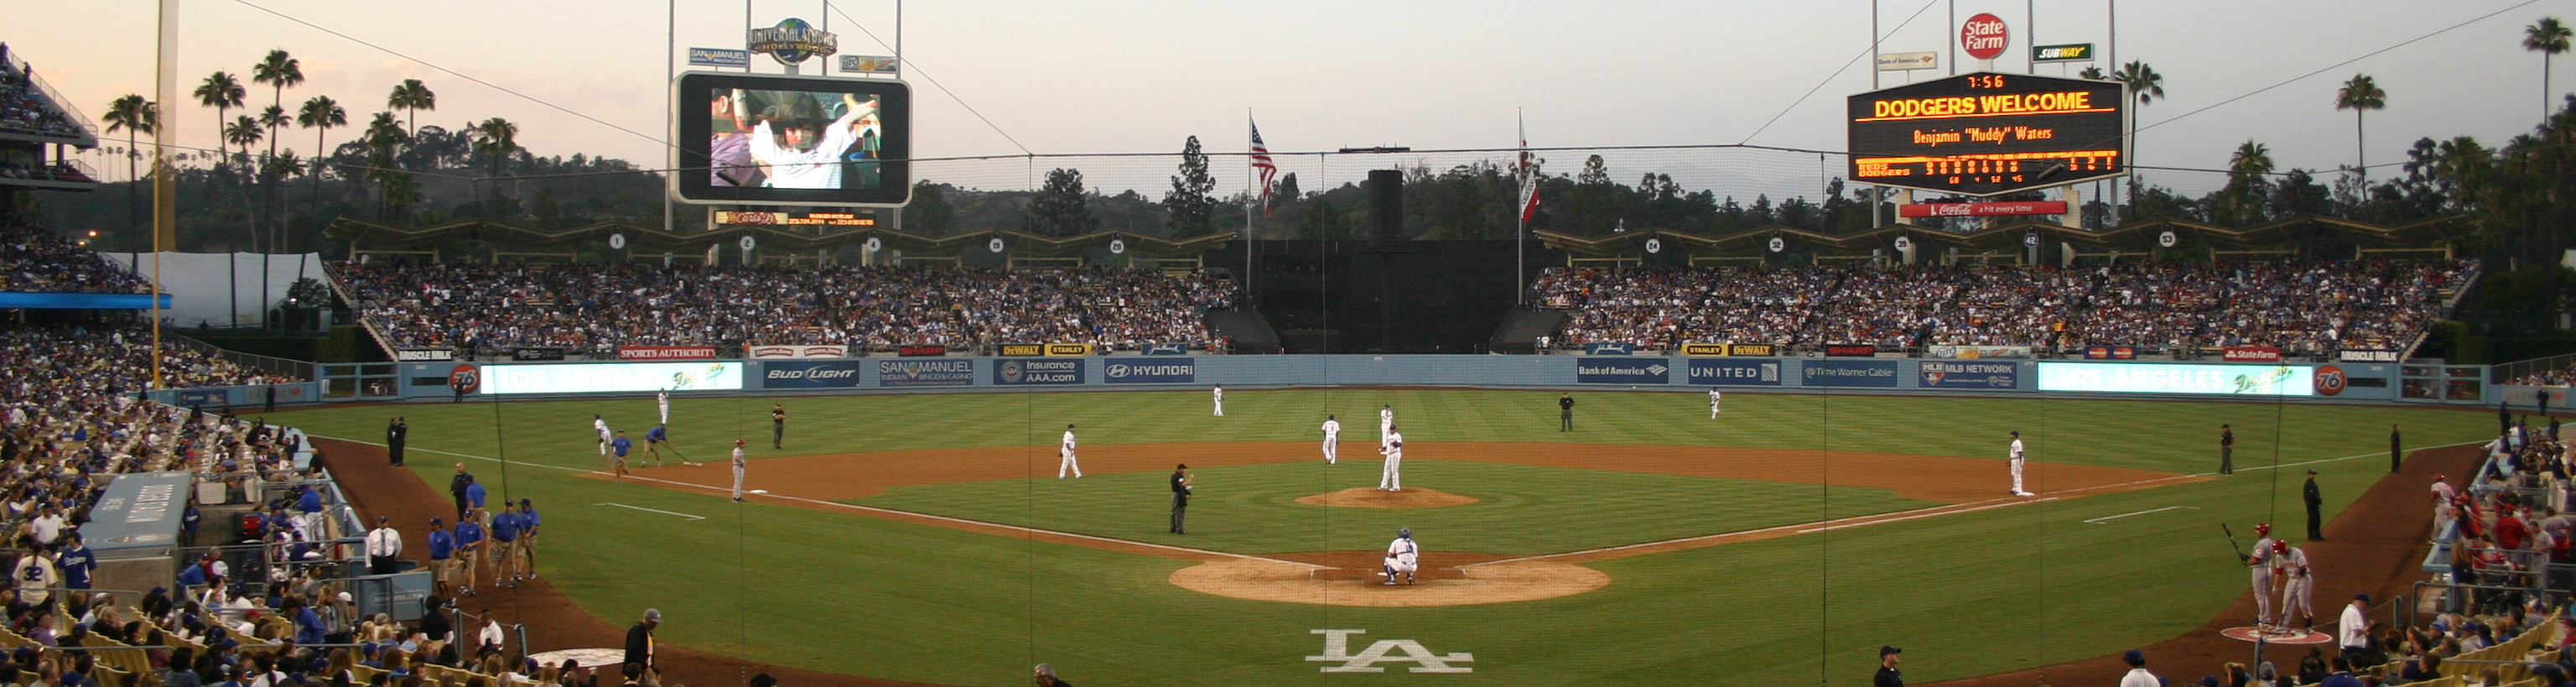 Dodger Stadium,west coast baseball trips,baseball tour packages